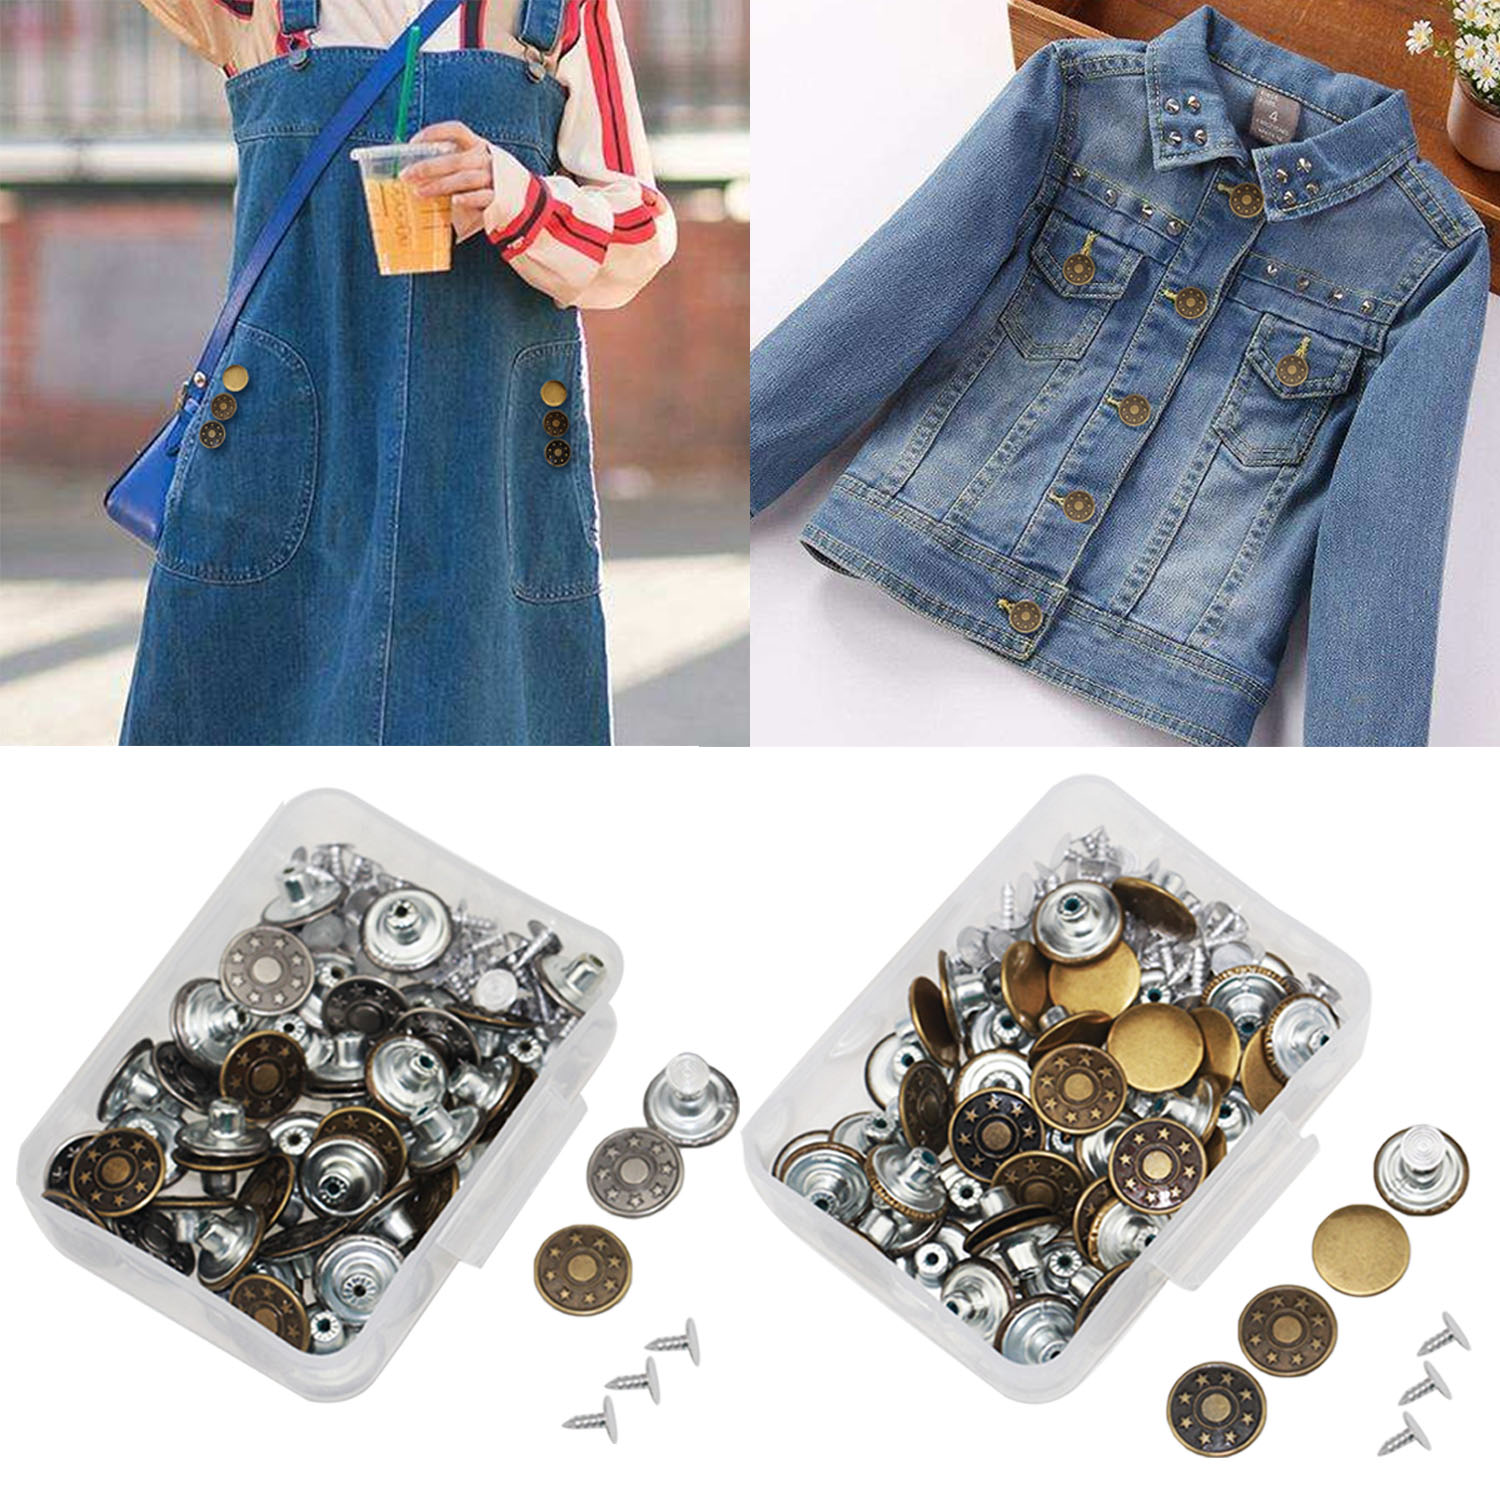 US $3 19 50% OFF|50 Set 17mm Replaceable Metal Tack Snap Buttons for Jeans  Shorts Jackets Backpacks Sweater Belts Bags Leather Tents Pants-in Buttons